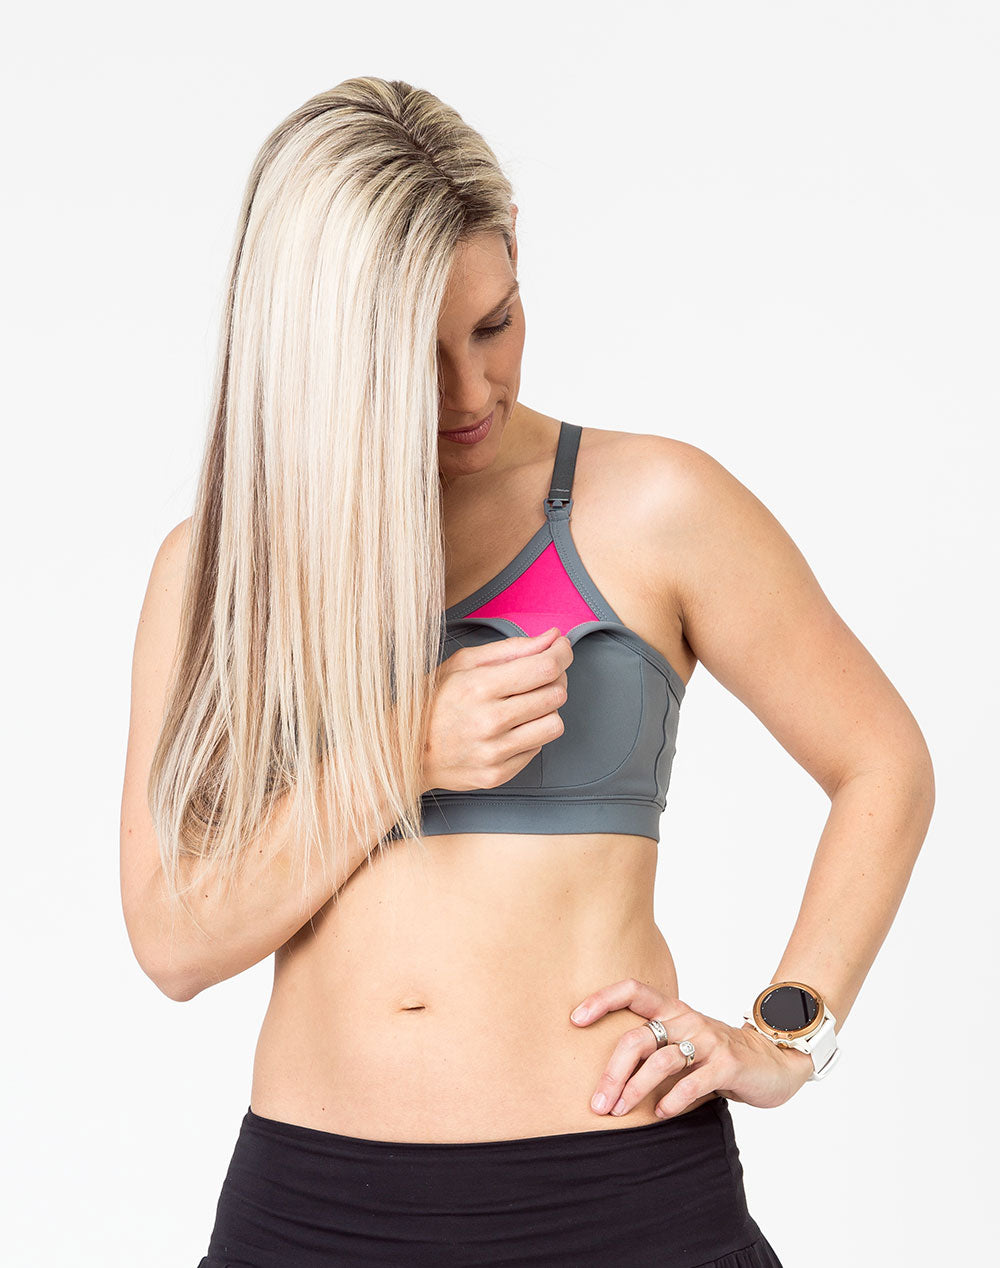 mum wearing a grey racerback nursing bra with one dropdown cup unclipped and pink lining